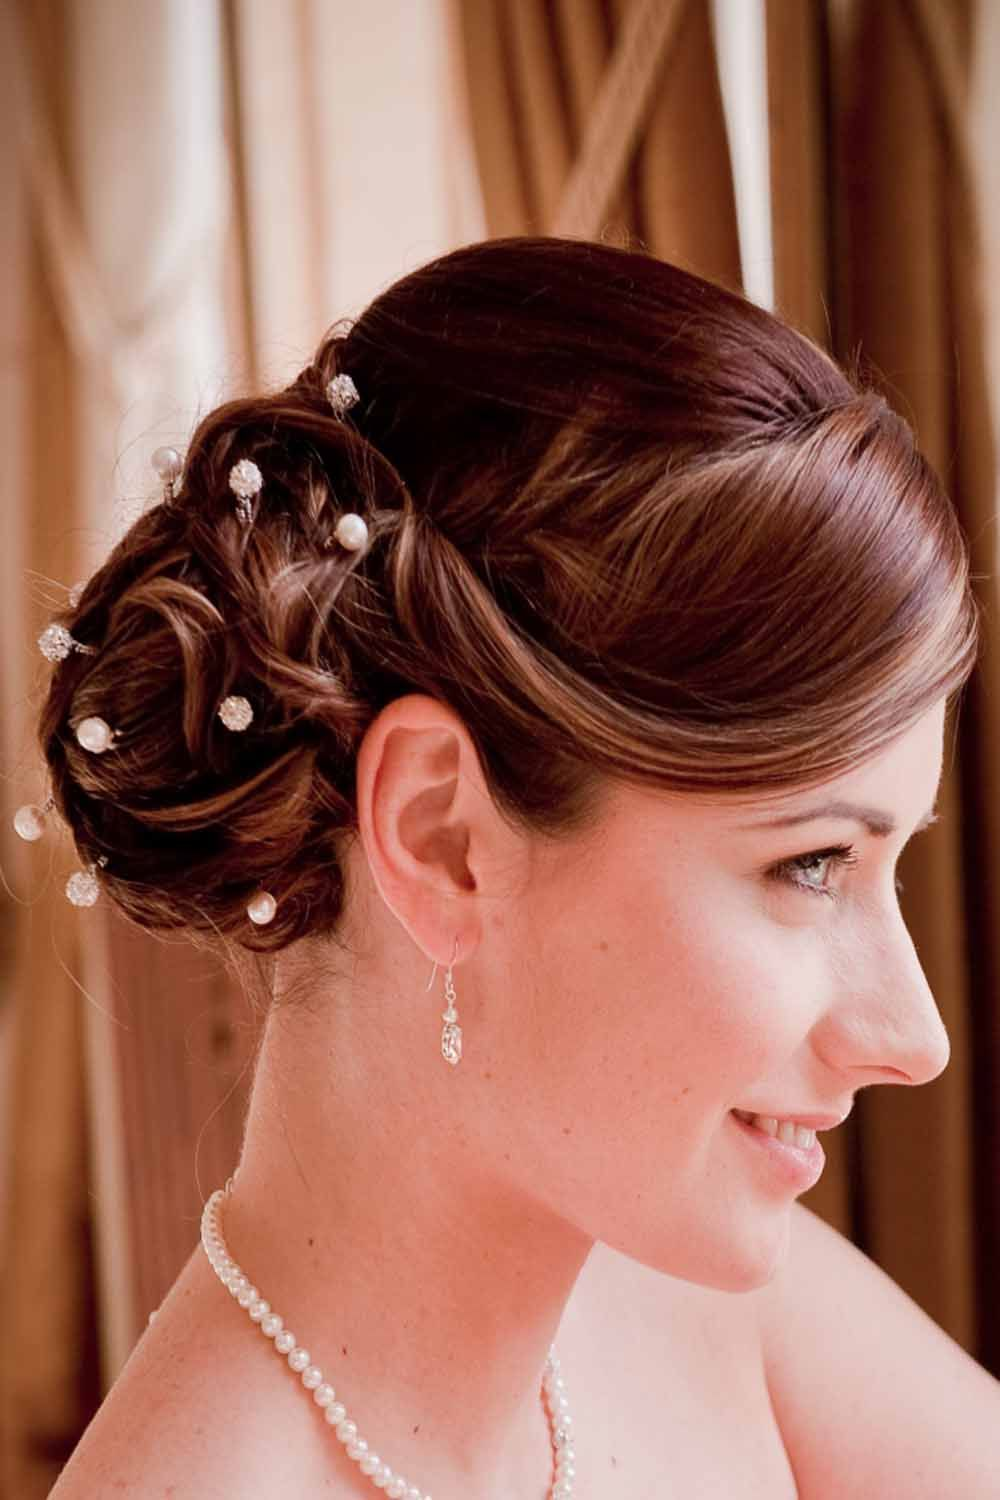 bridal hair styles designs images : wedding updos designs pics